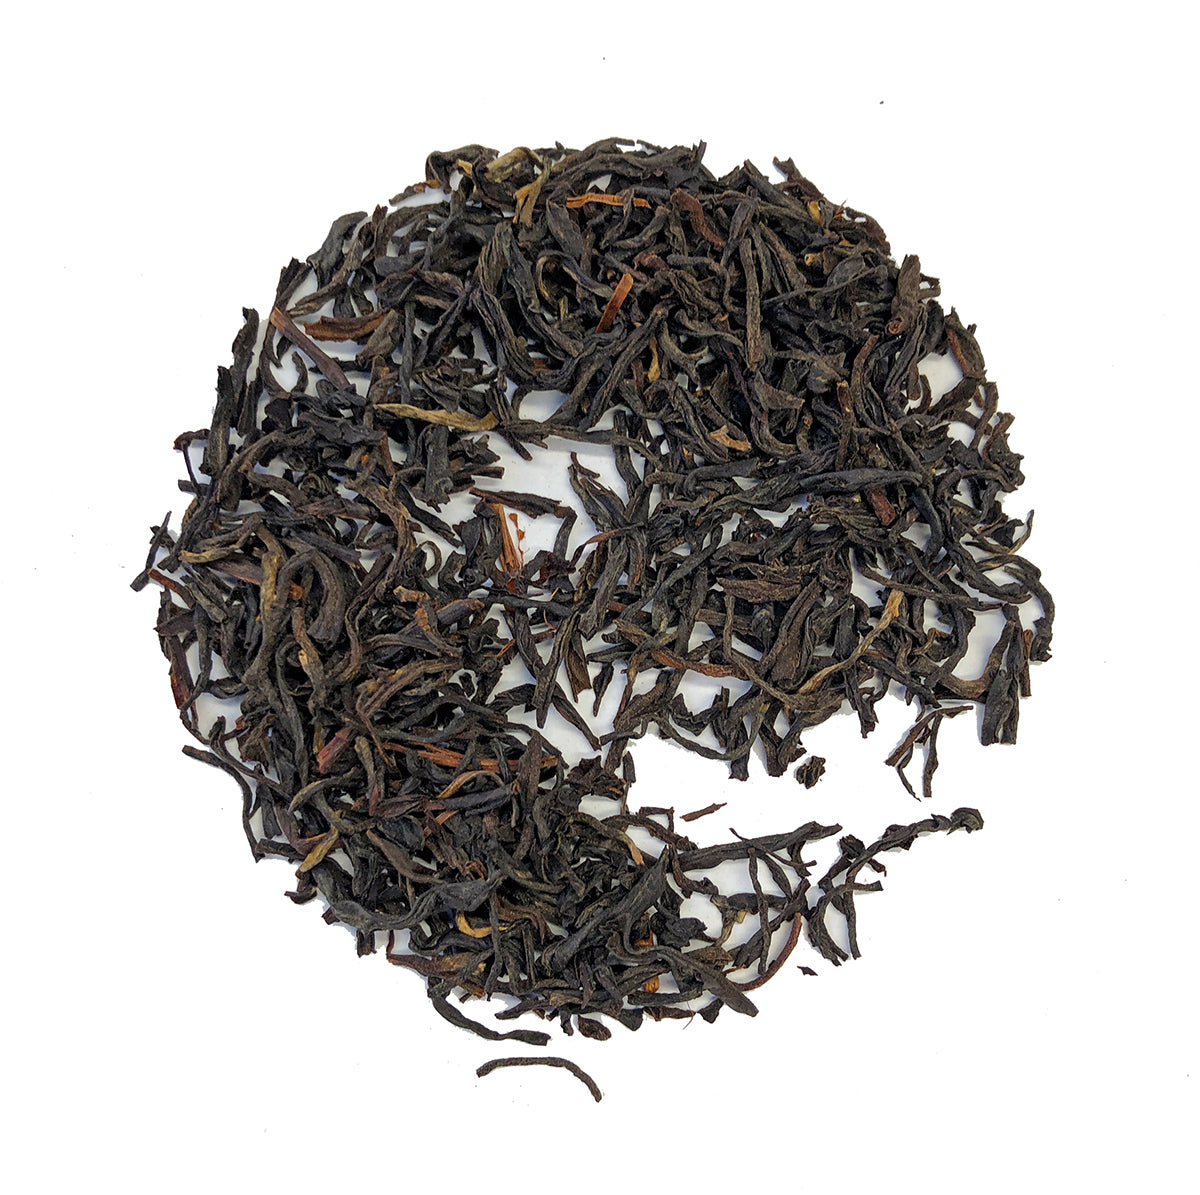 English Breakfast Tea - Premium Organic